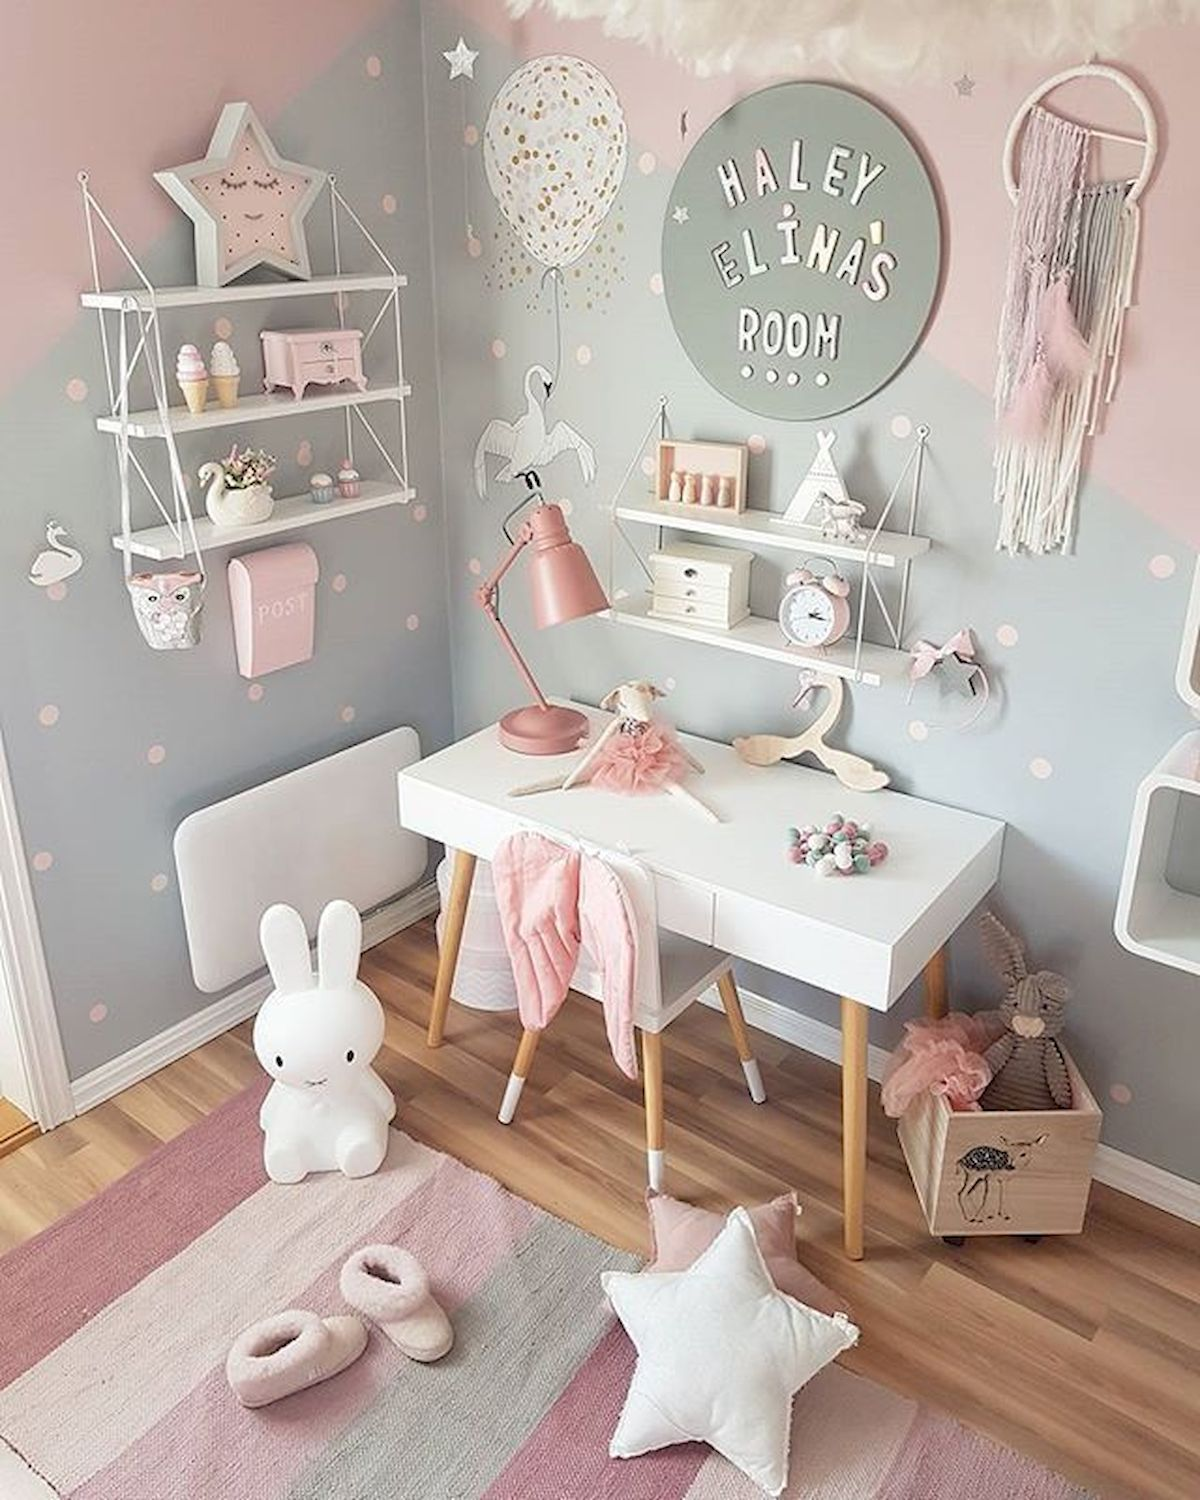 Storage Ideas For Rooms And Children's Playgrounds #girlsbedroom